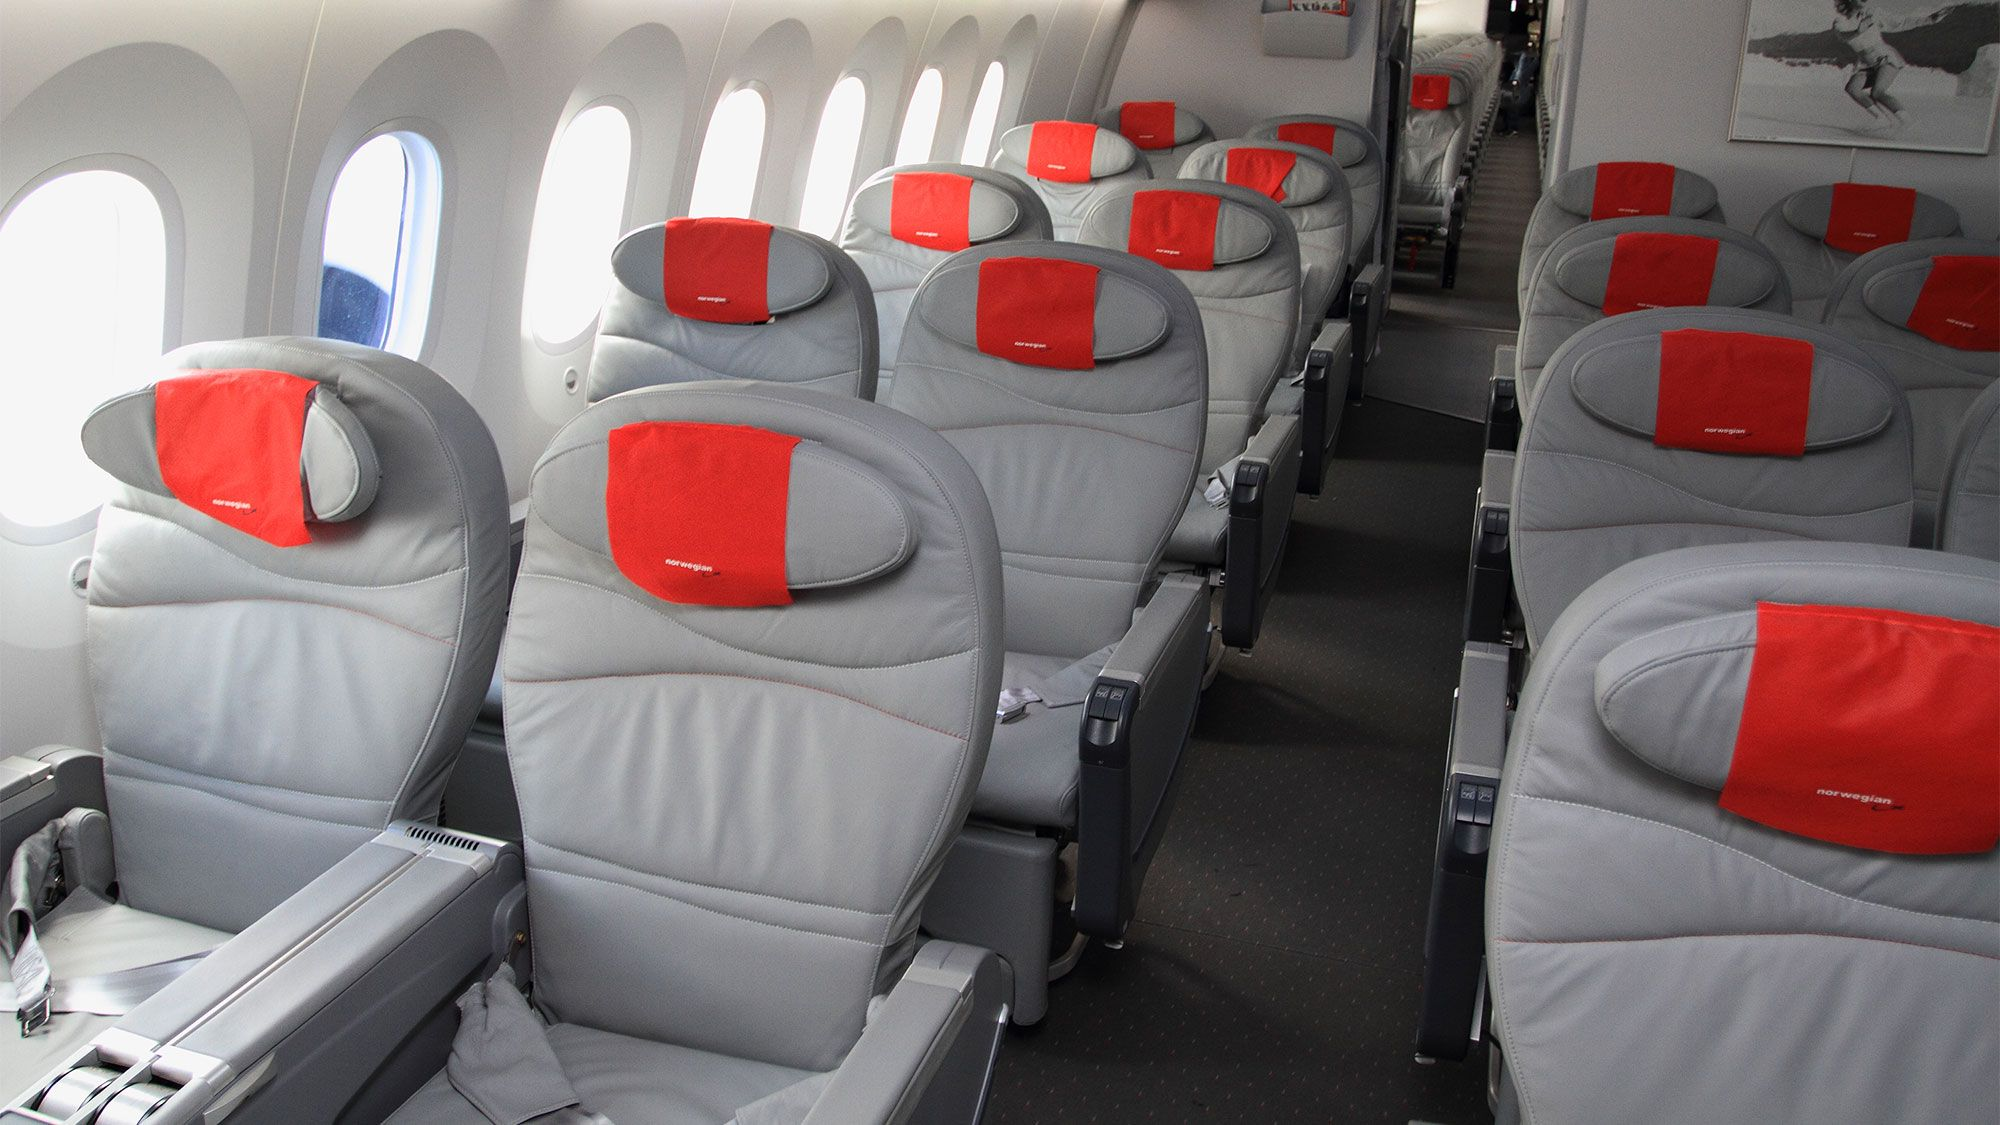 Norwegian Air S Premium Cabin To Have More Seats Less Legroom Travel Weekly Travel Weekly Norwegian Air Travel